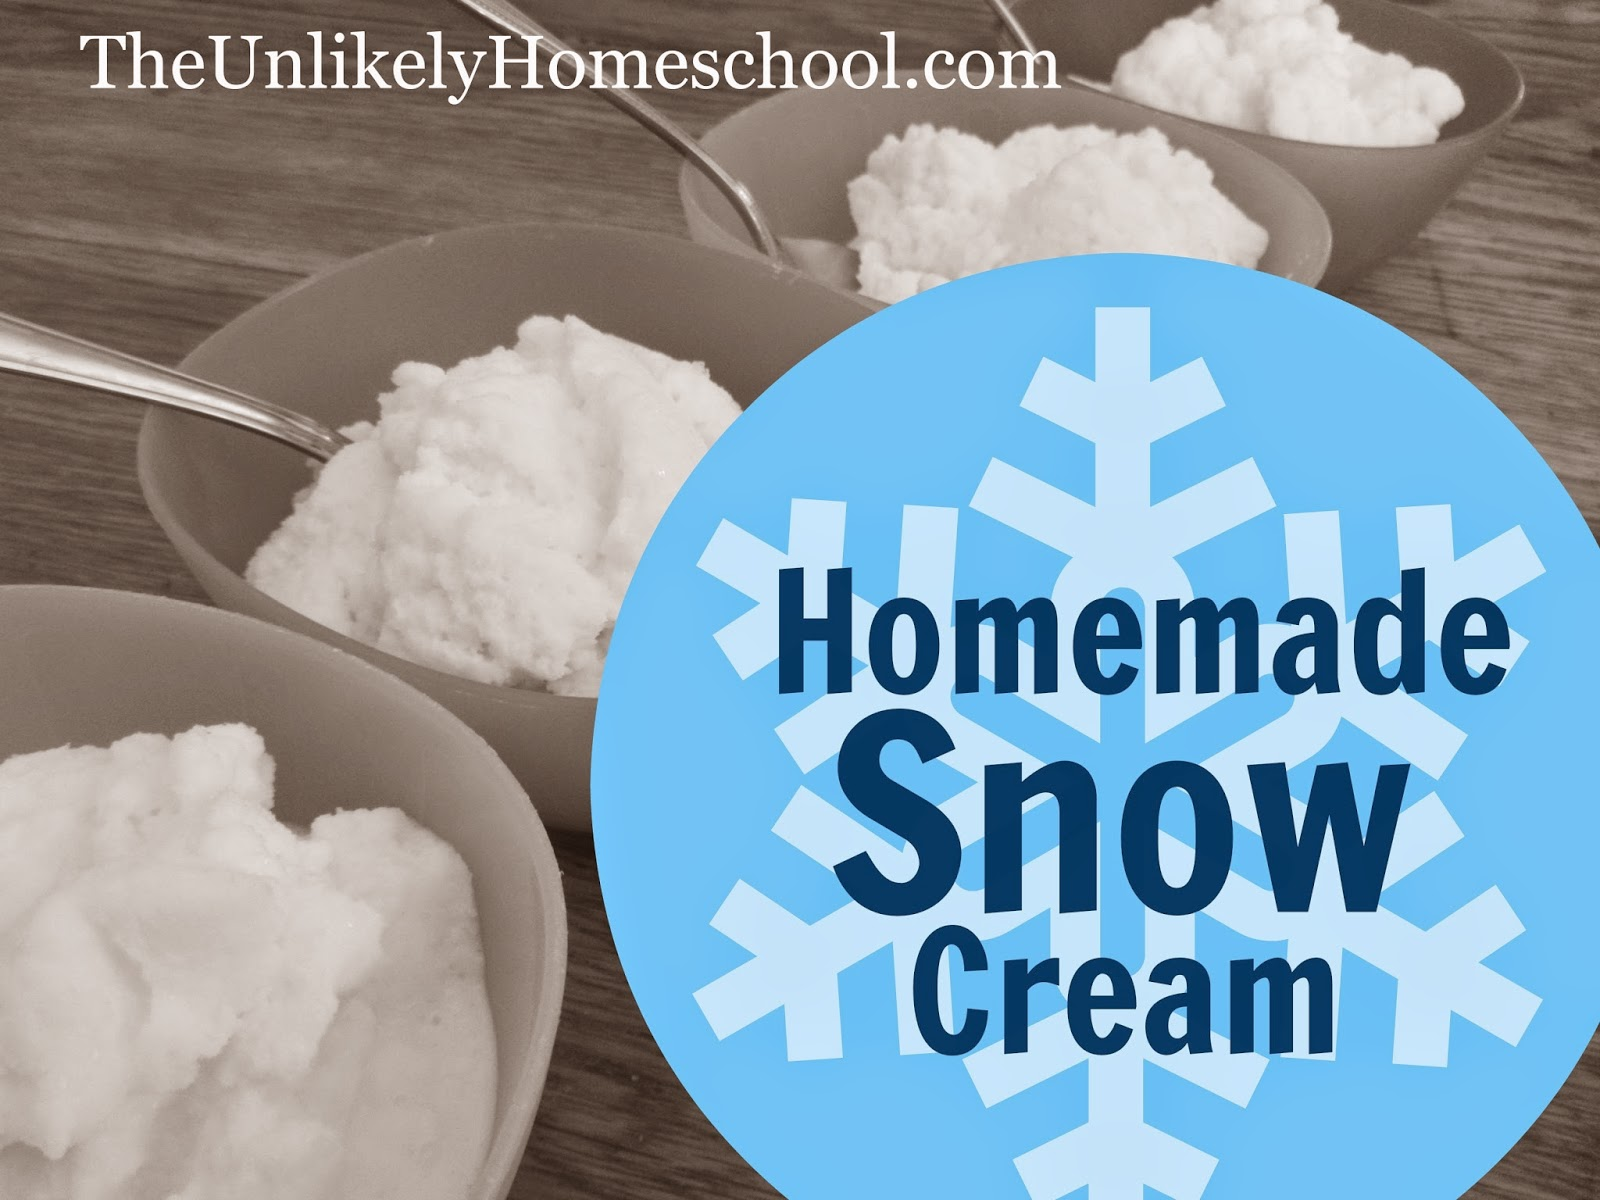 The unlikely homeschool homemade snow cream recipe homemade snow cream delicious easy peasy ice cream made from snow the ccuart Gallery